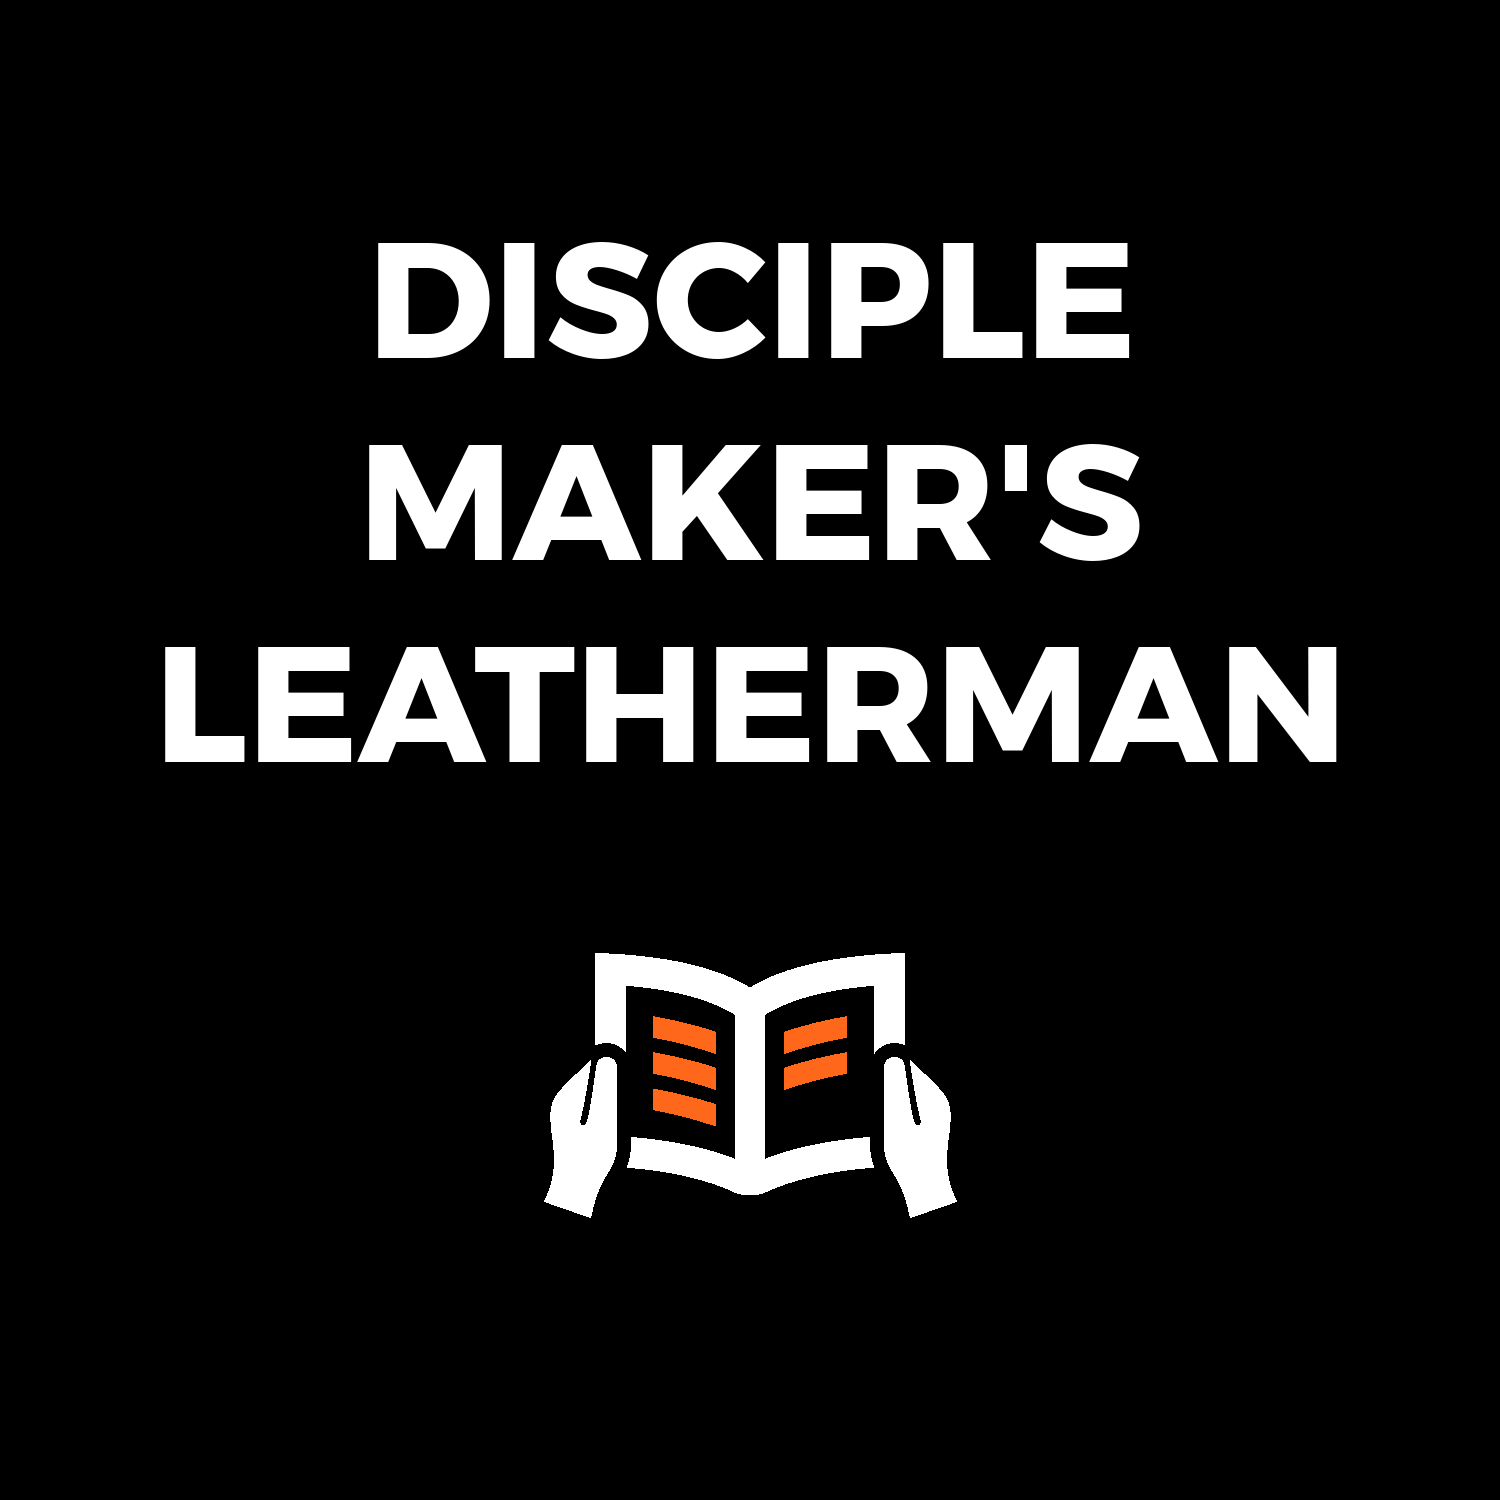 Disciple  Maker's Leatherman